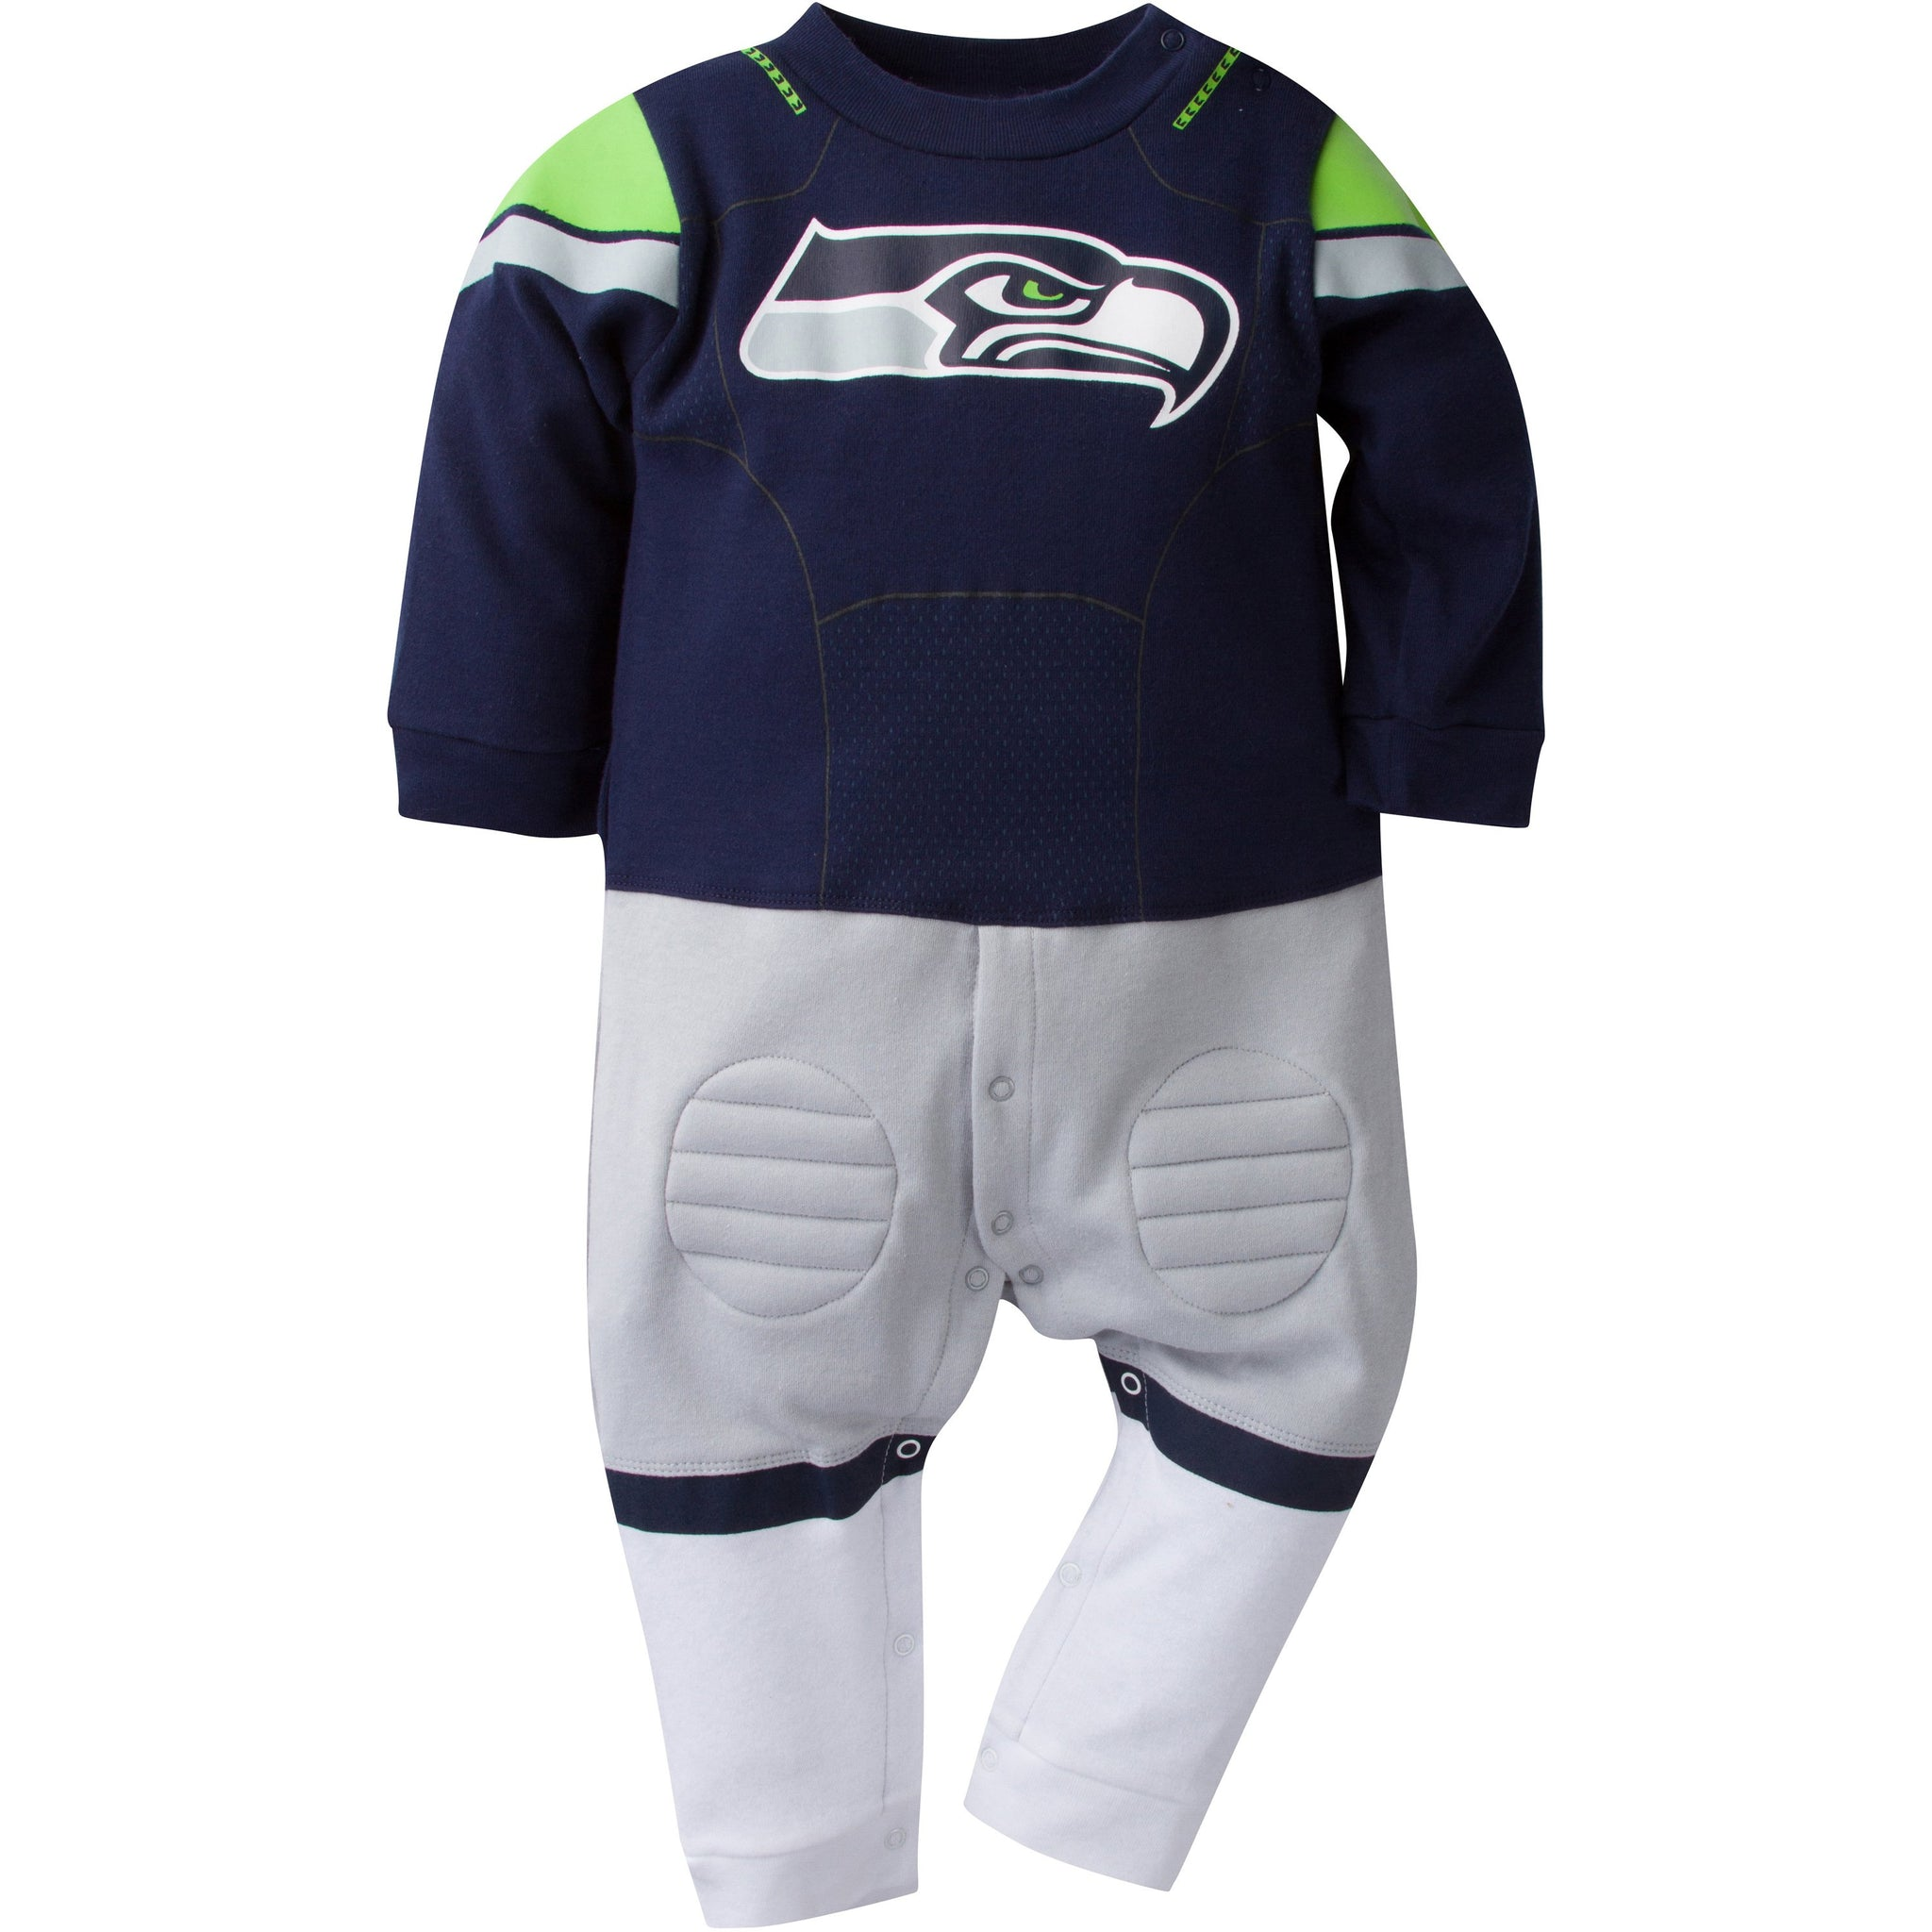 pretty nice ec921 0ad15 Seattle Seahawks Baby Clothing - Jerseys, Bodysuits ...